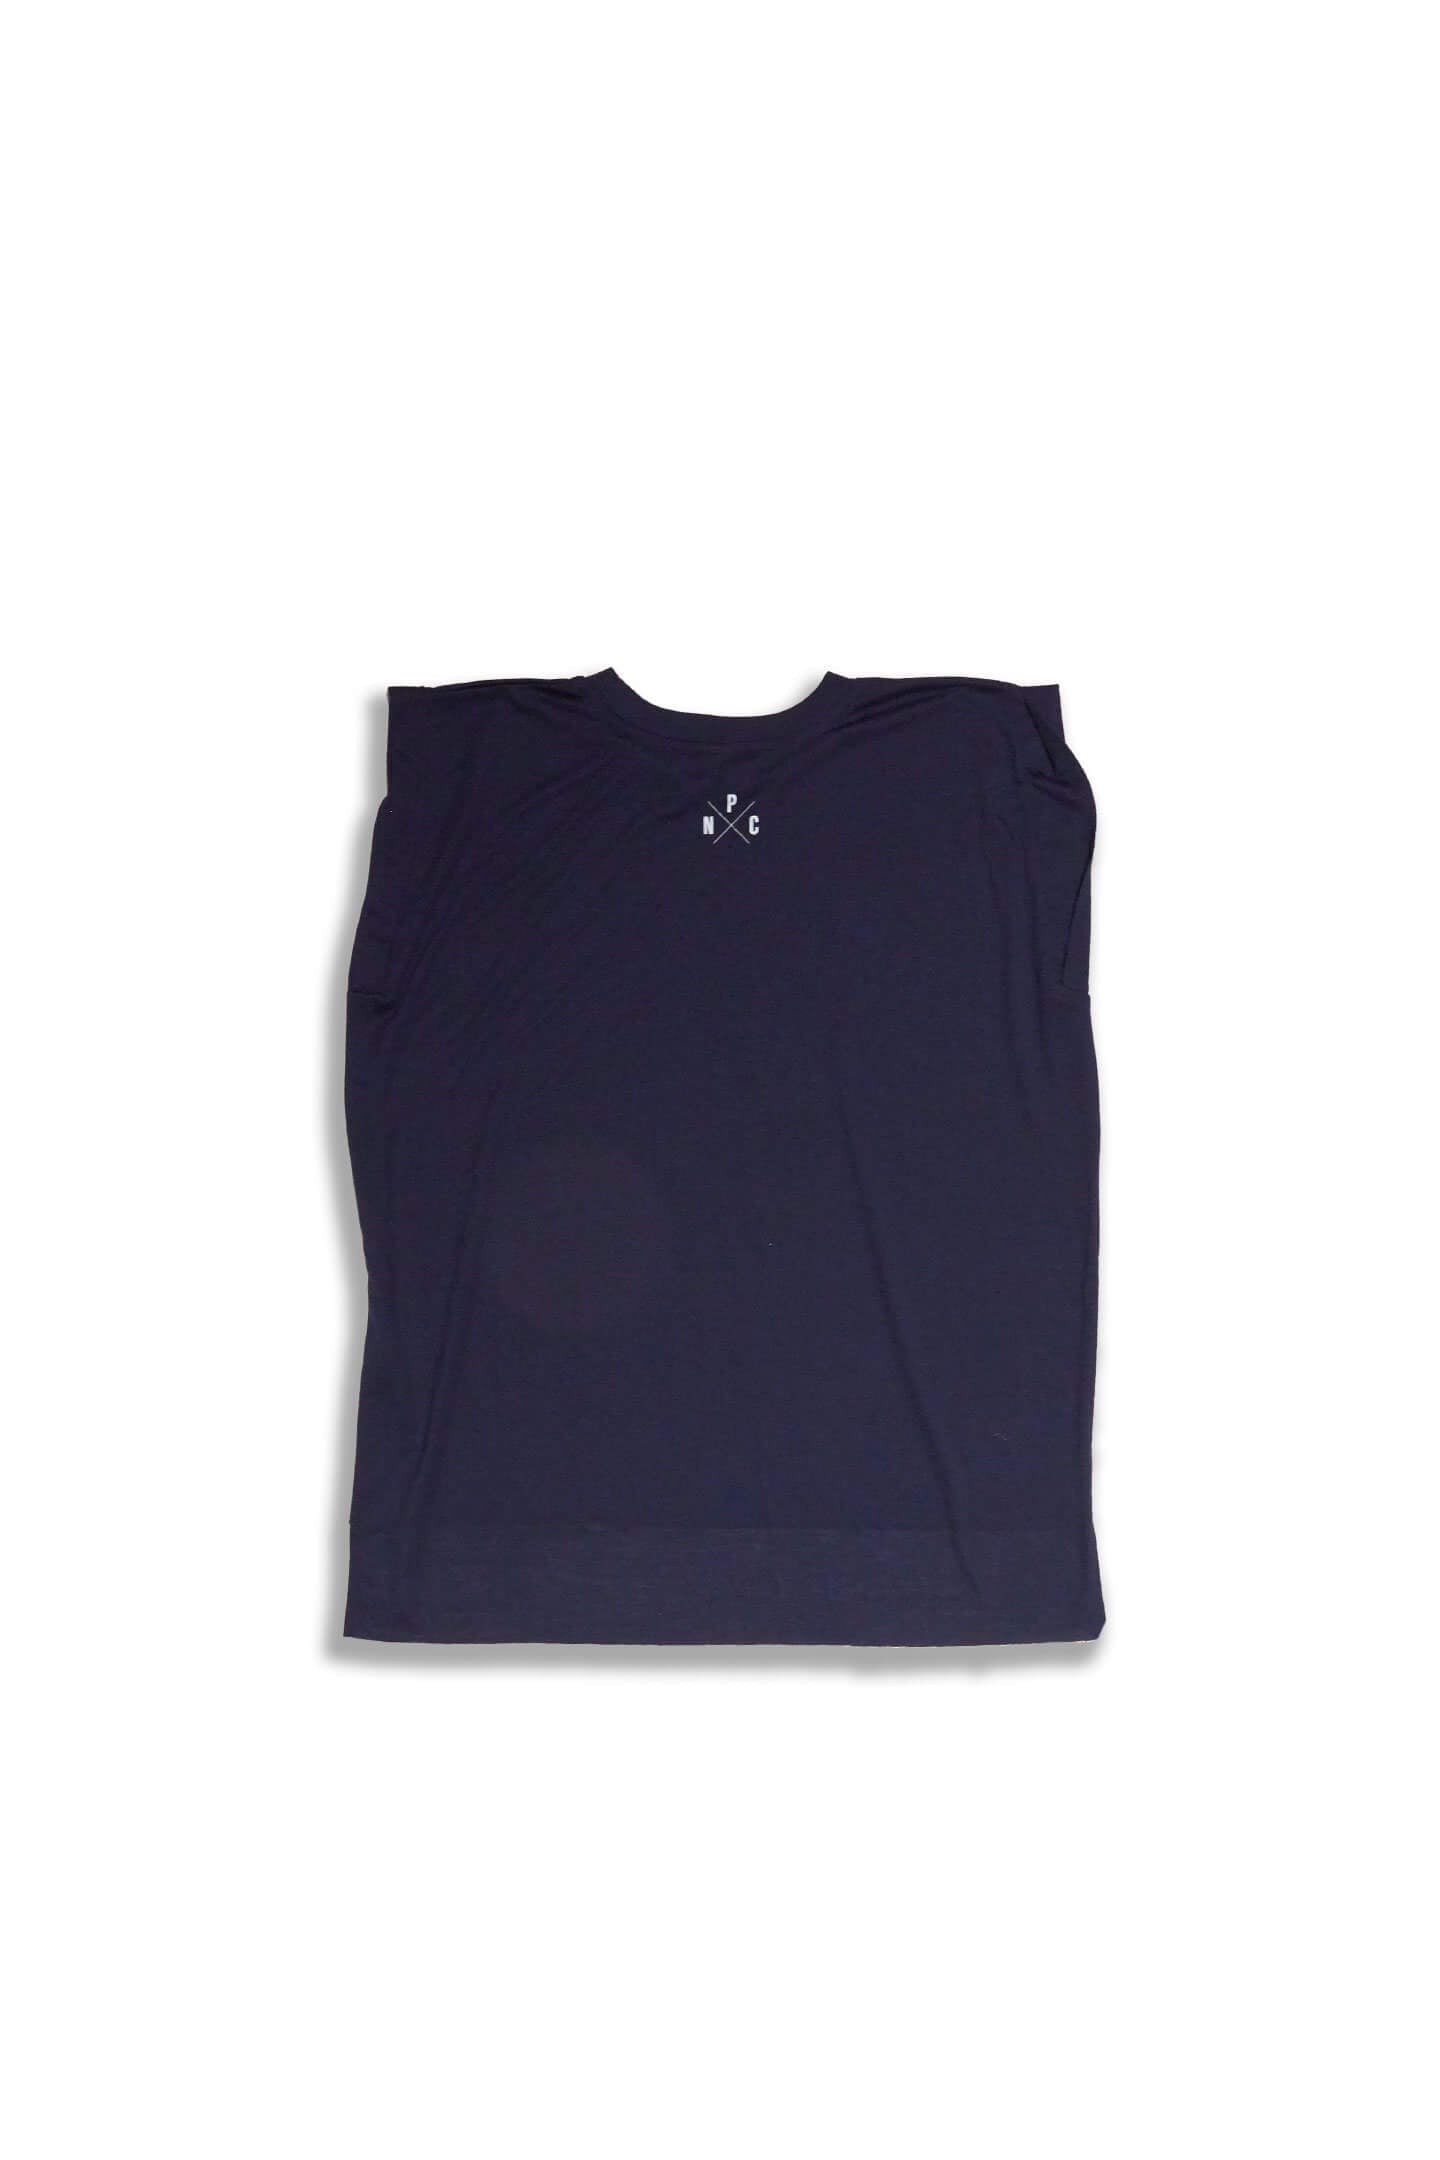 WARRIOR MUSCLE TEE - NAVY BLUE